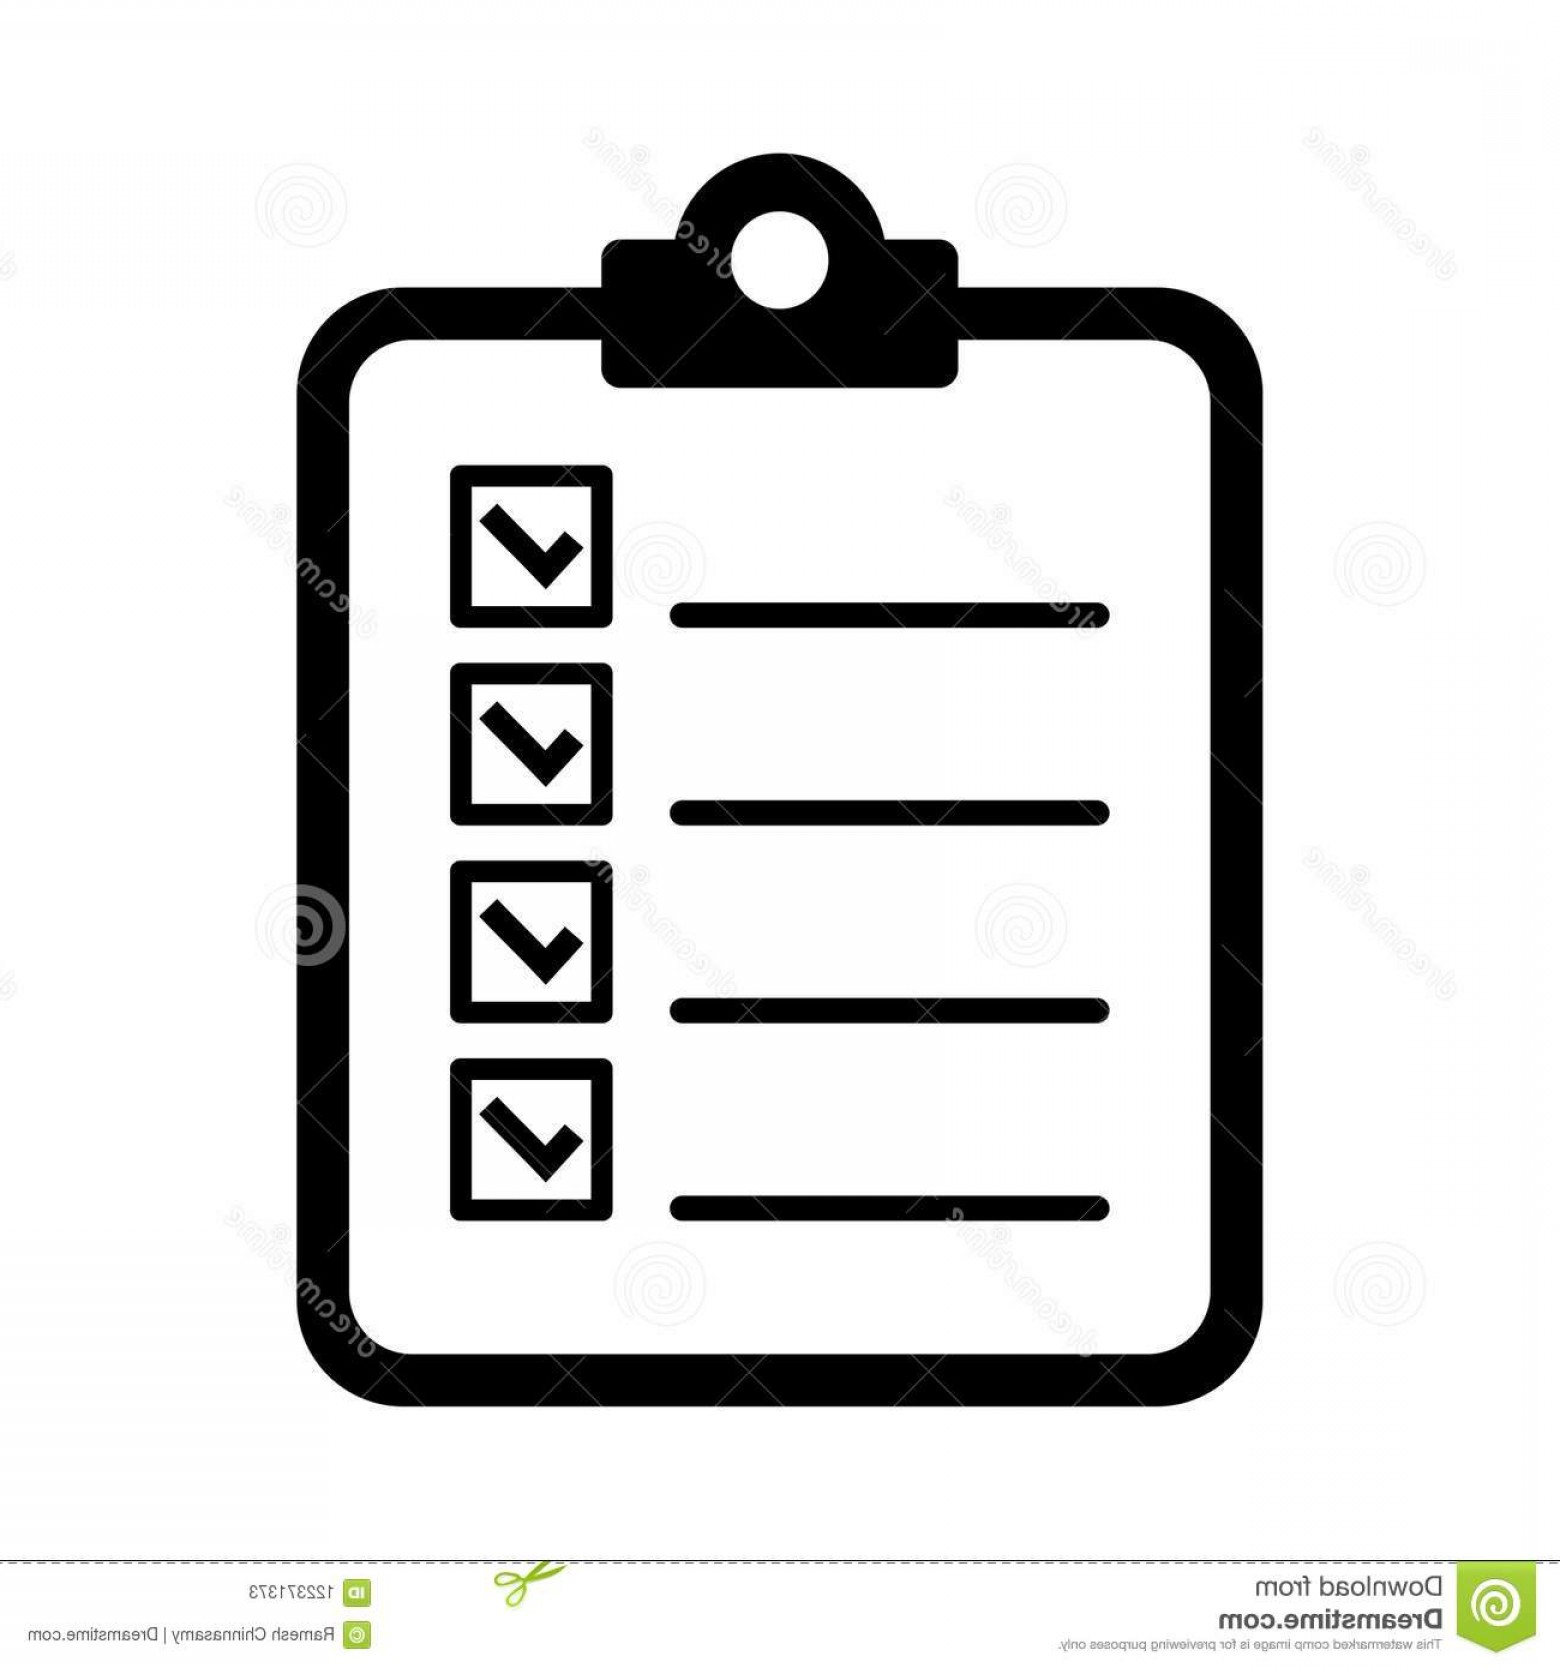 In Icon Stock Vector: Simple Vector Illustration To Do List Icon White Background To Do List Icon Image